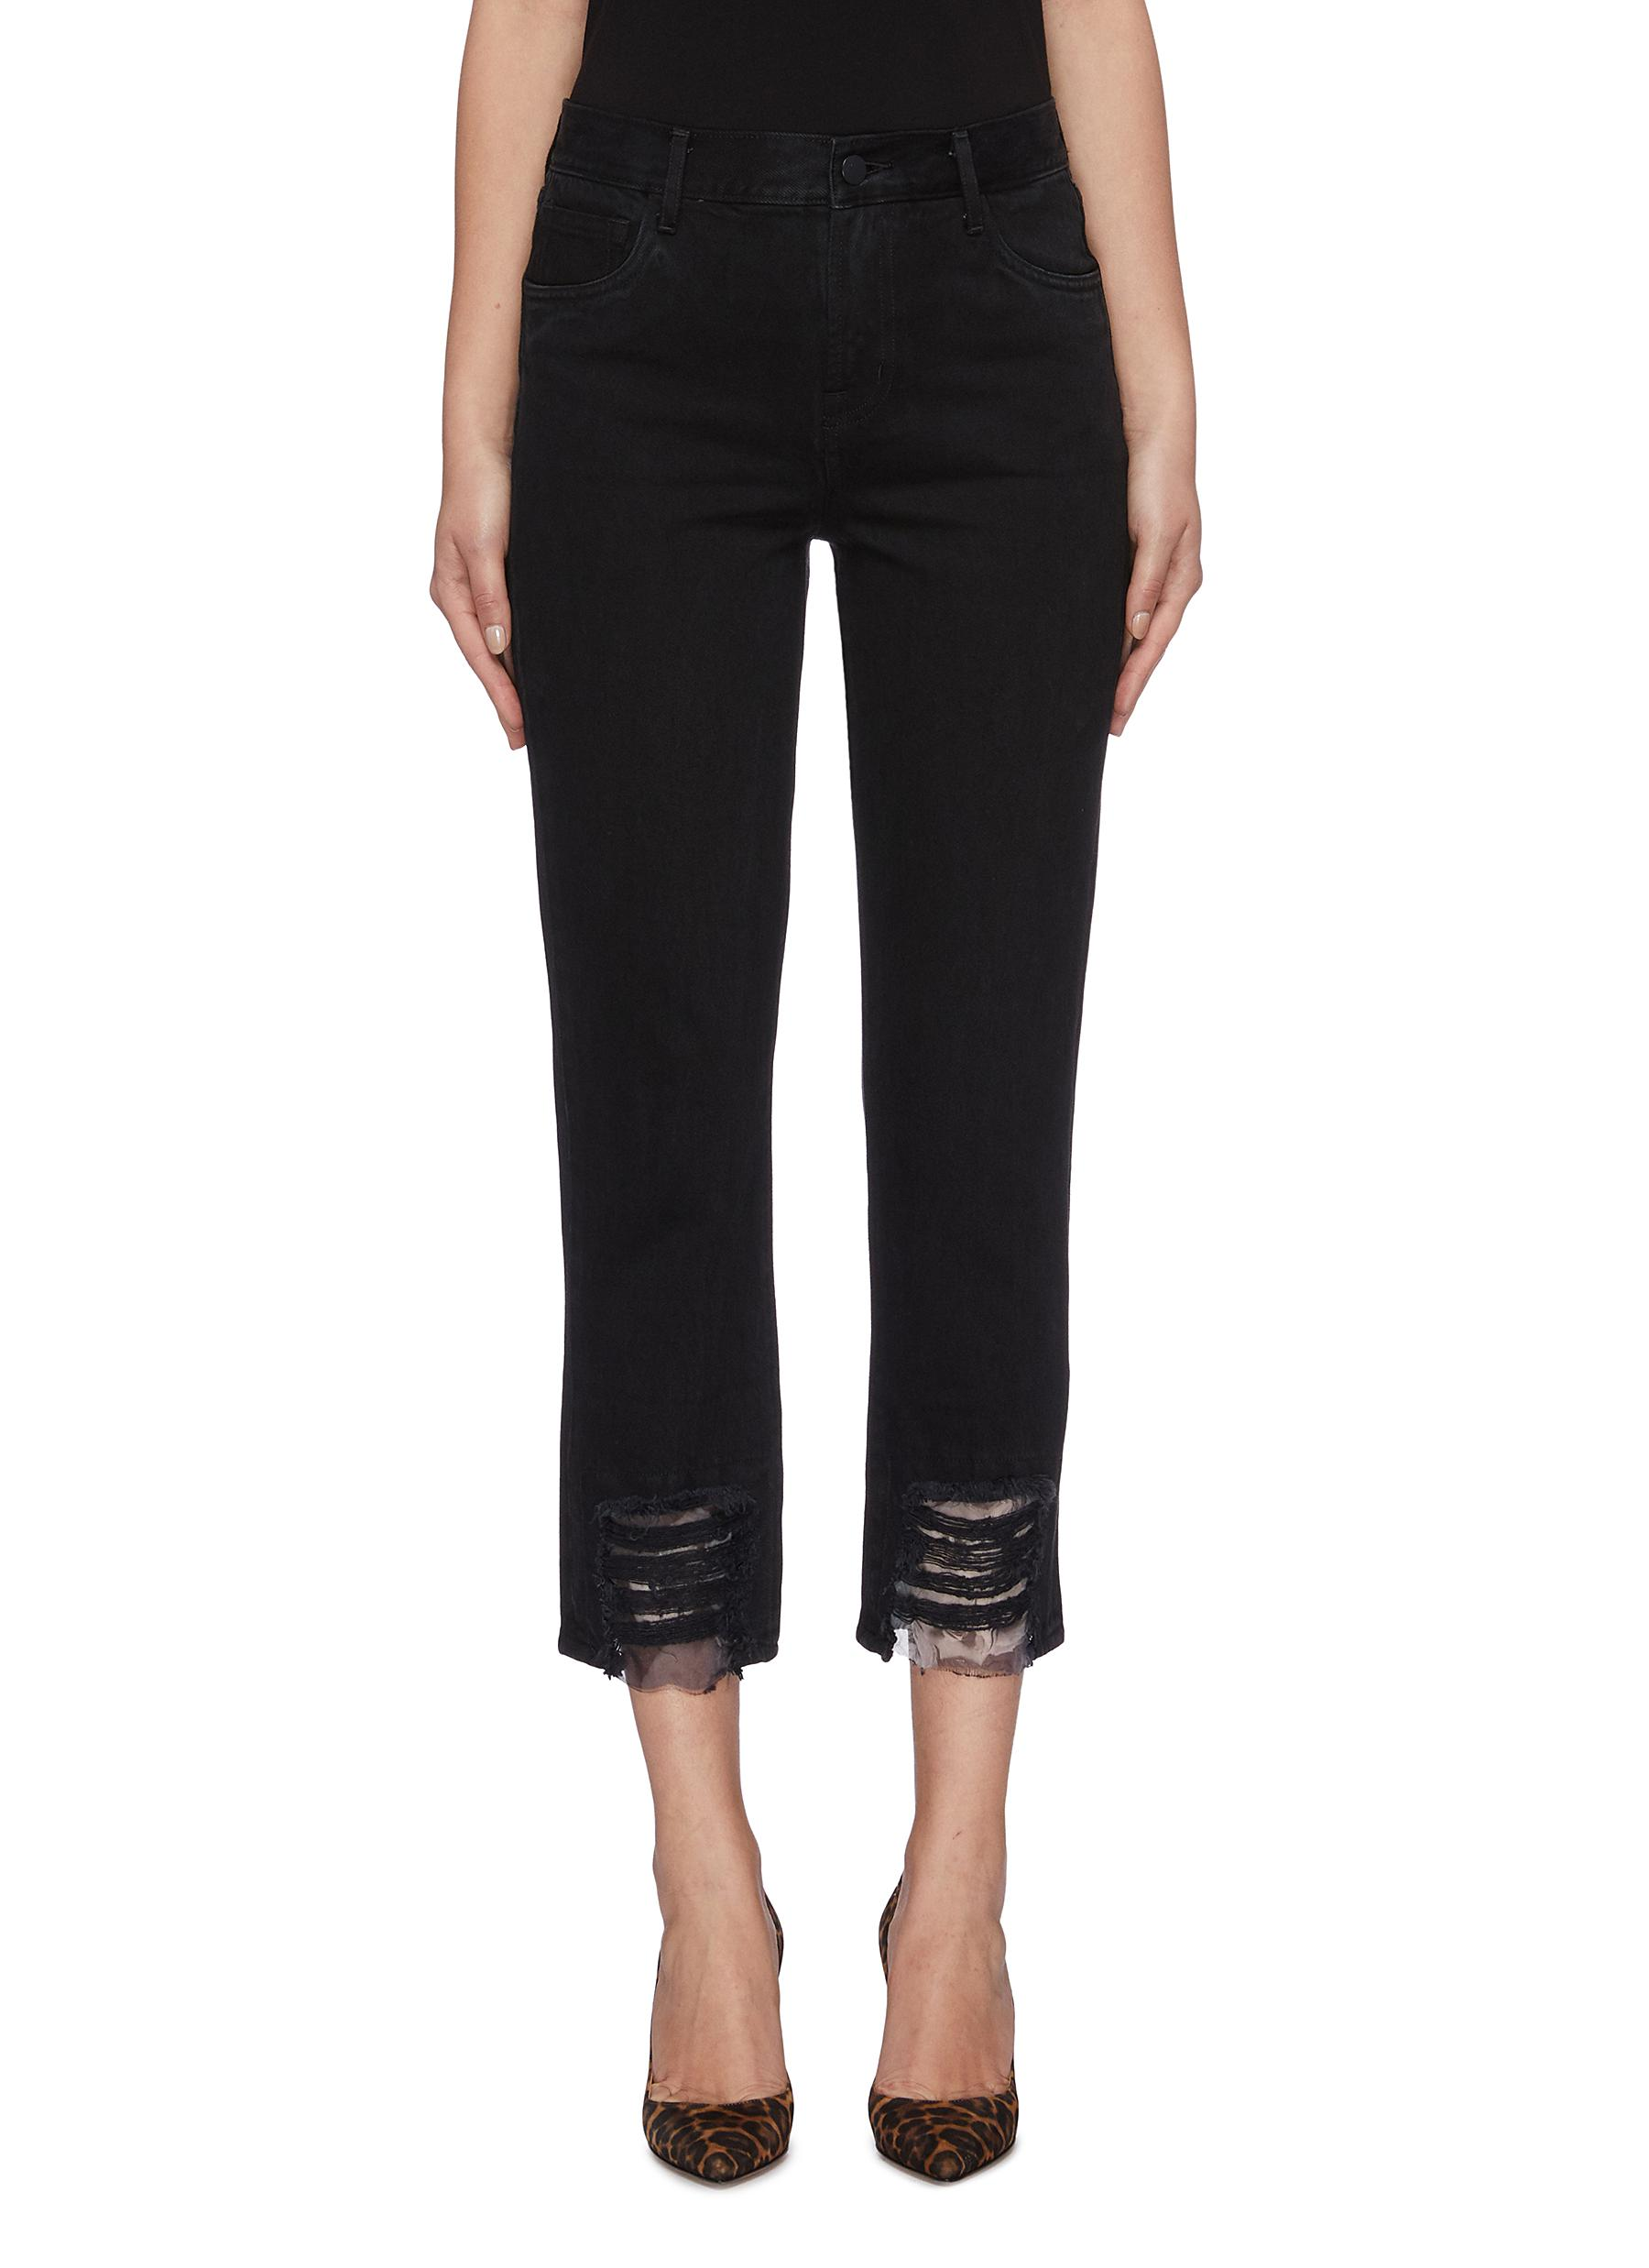 Ruby organdy panelled ripped cuff cigarette jeans by J Brand